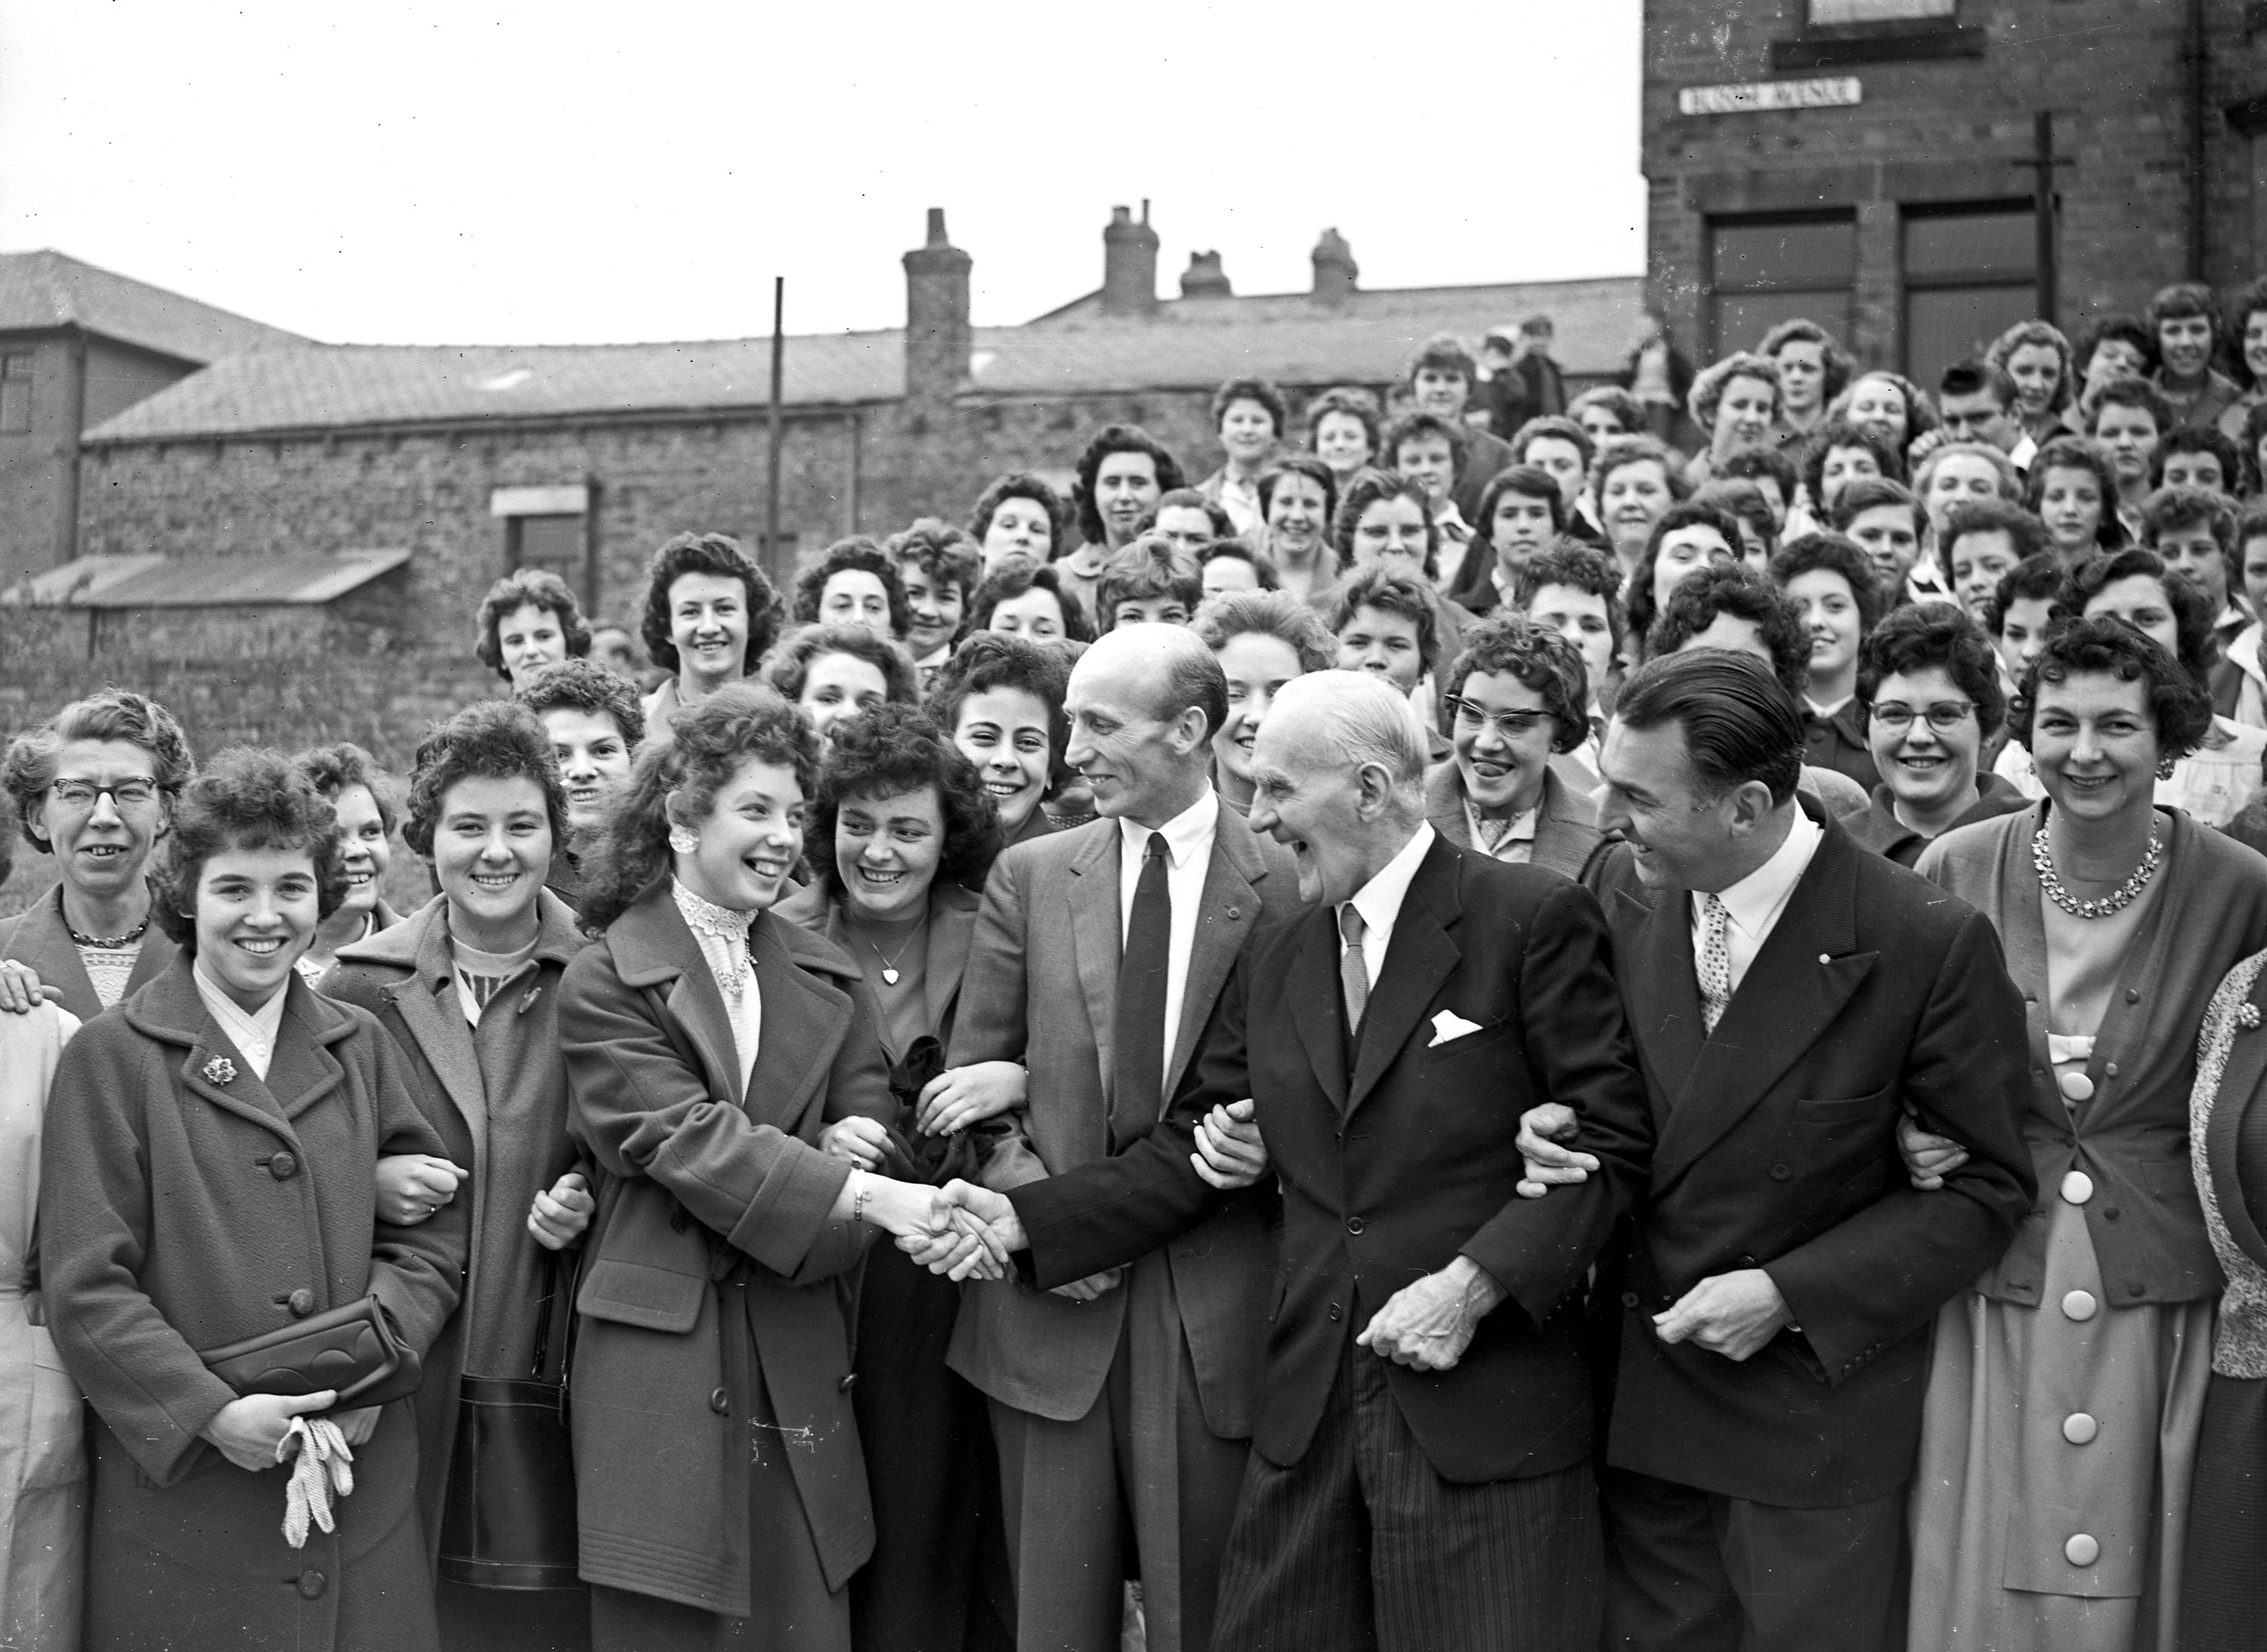 16.1959 June 18th Opening Glove factory